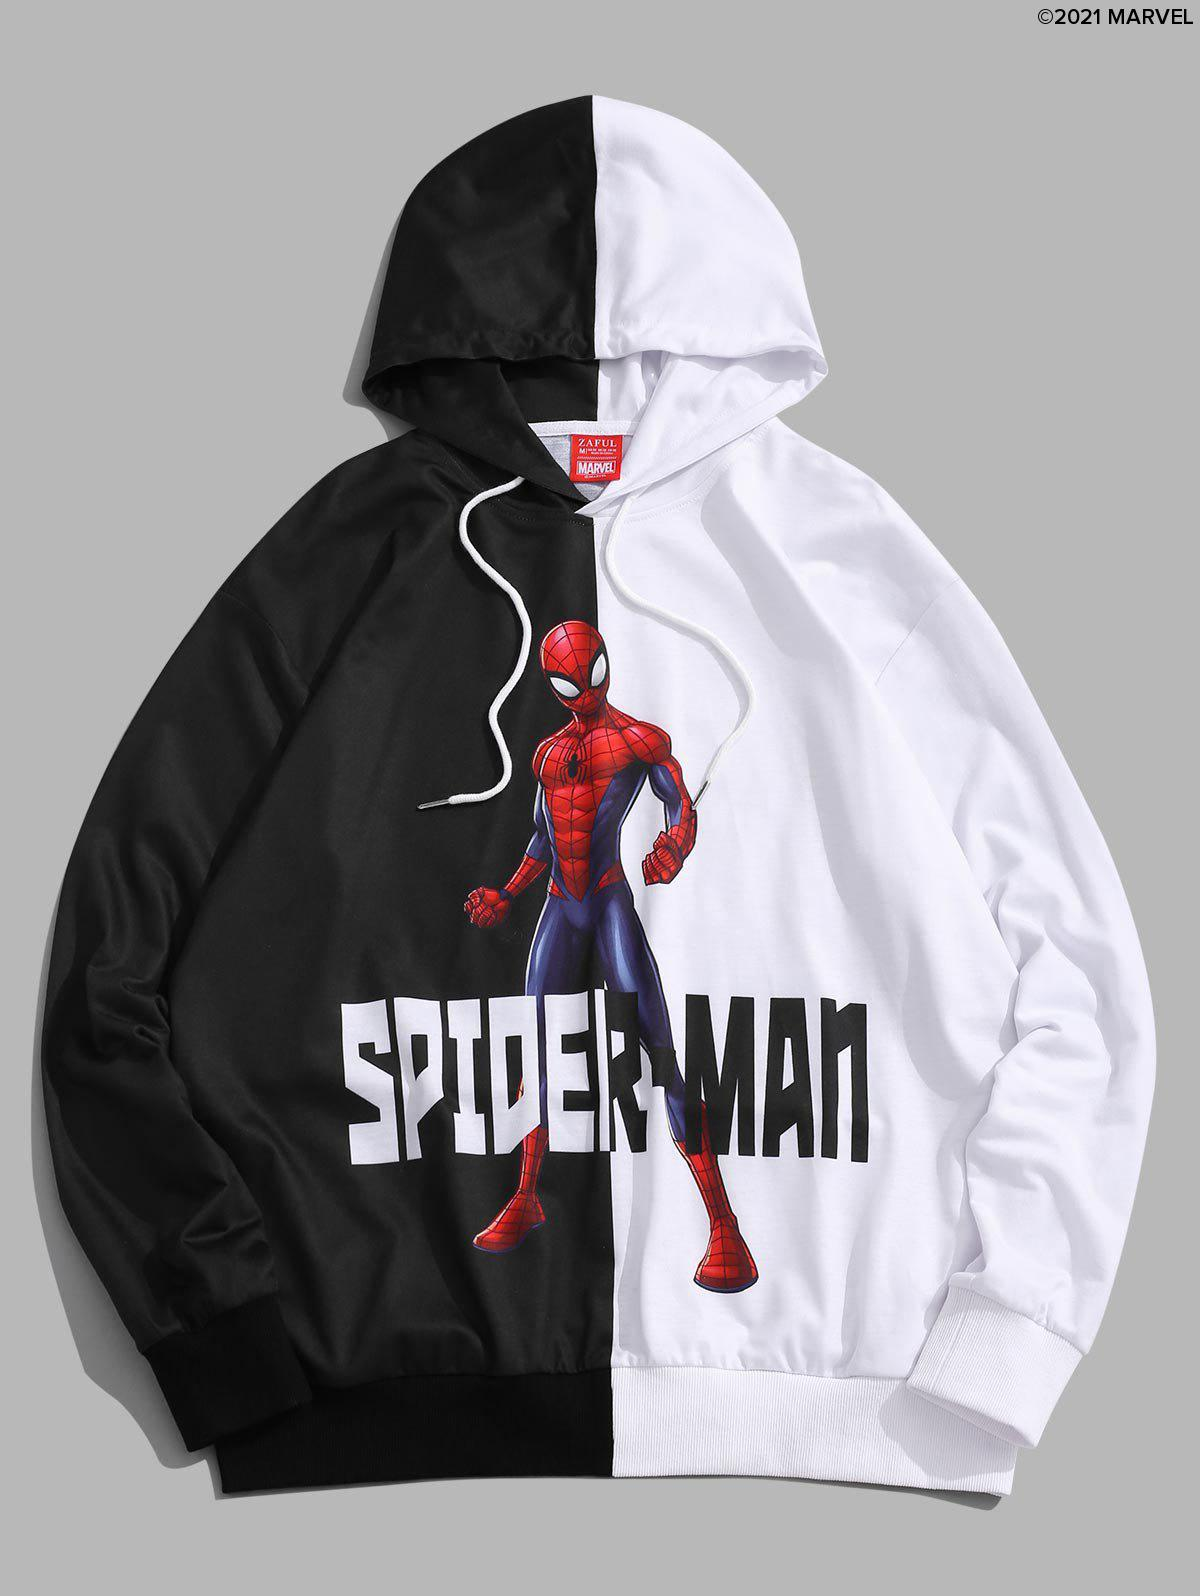 Affordable Marvel Spider-Man Print Two Tone Pullover Hoodie